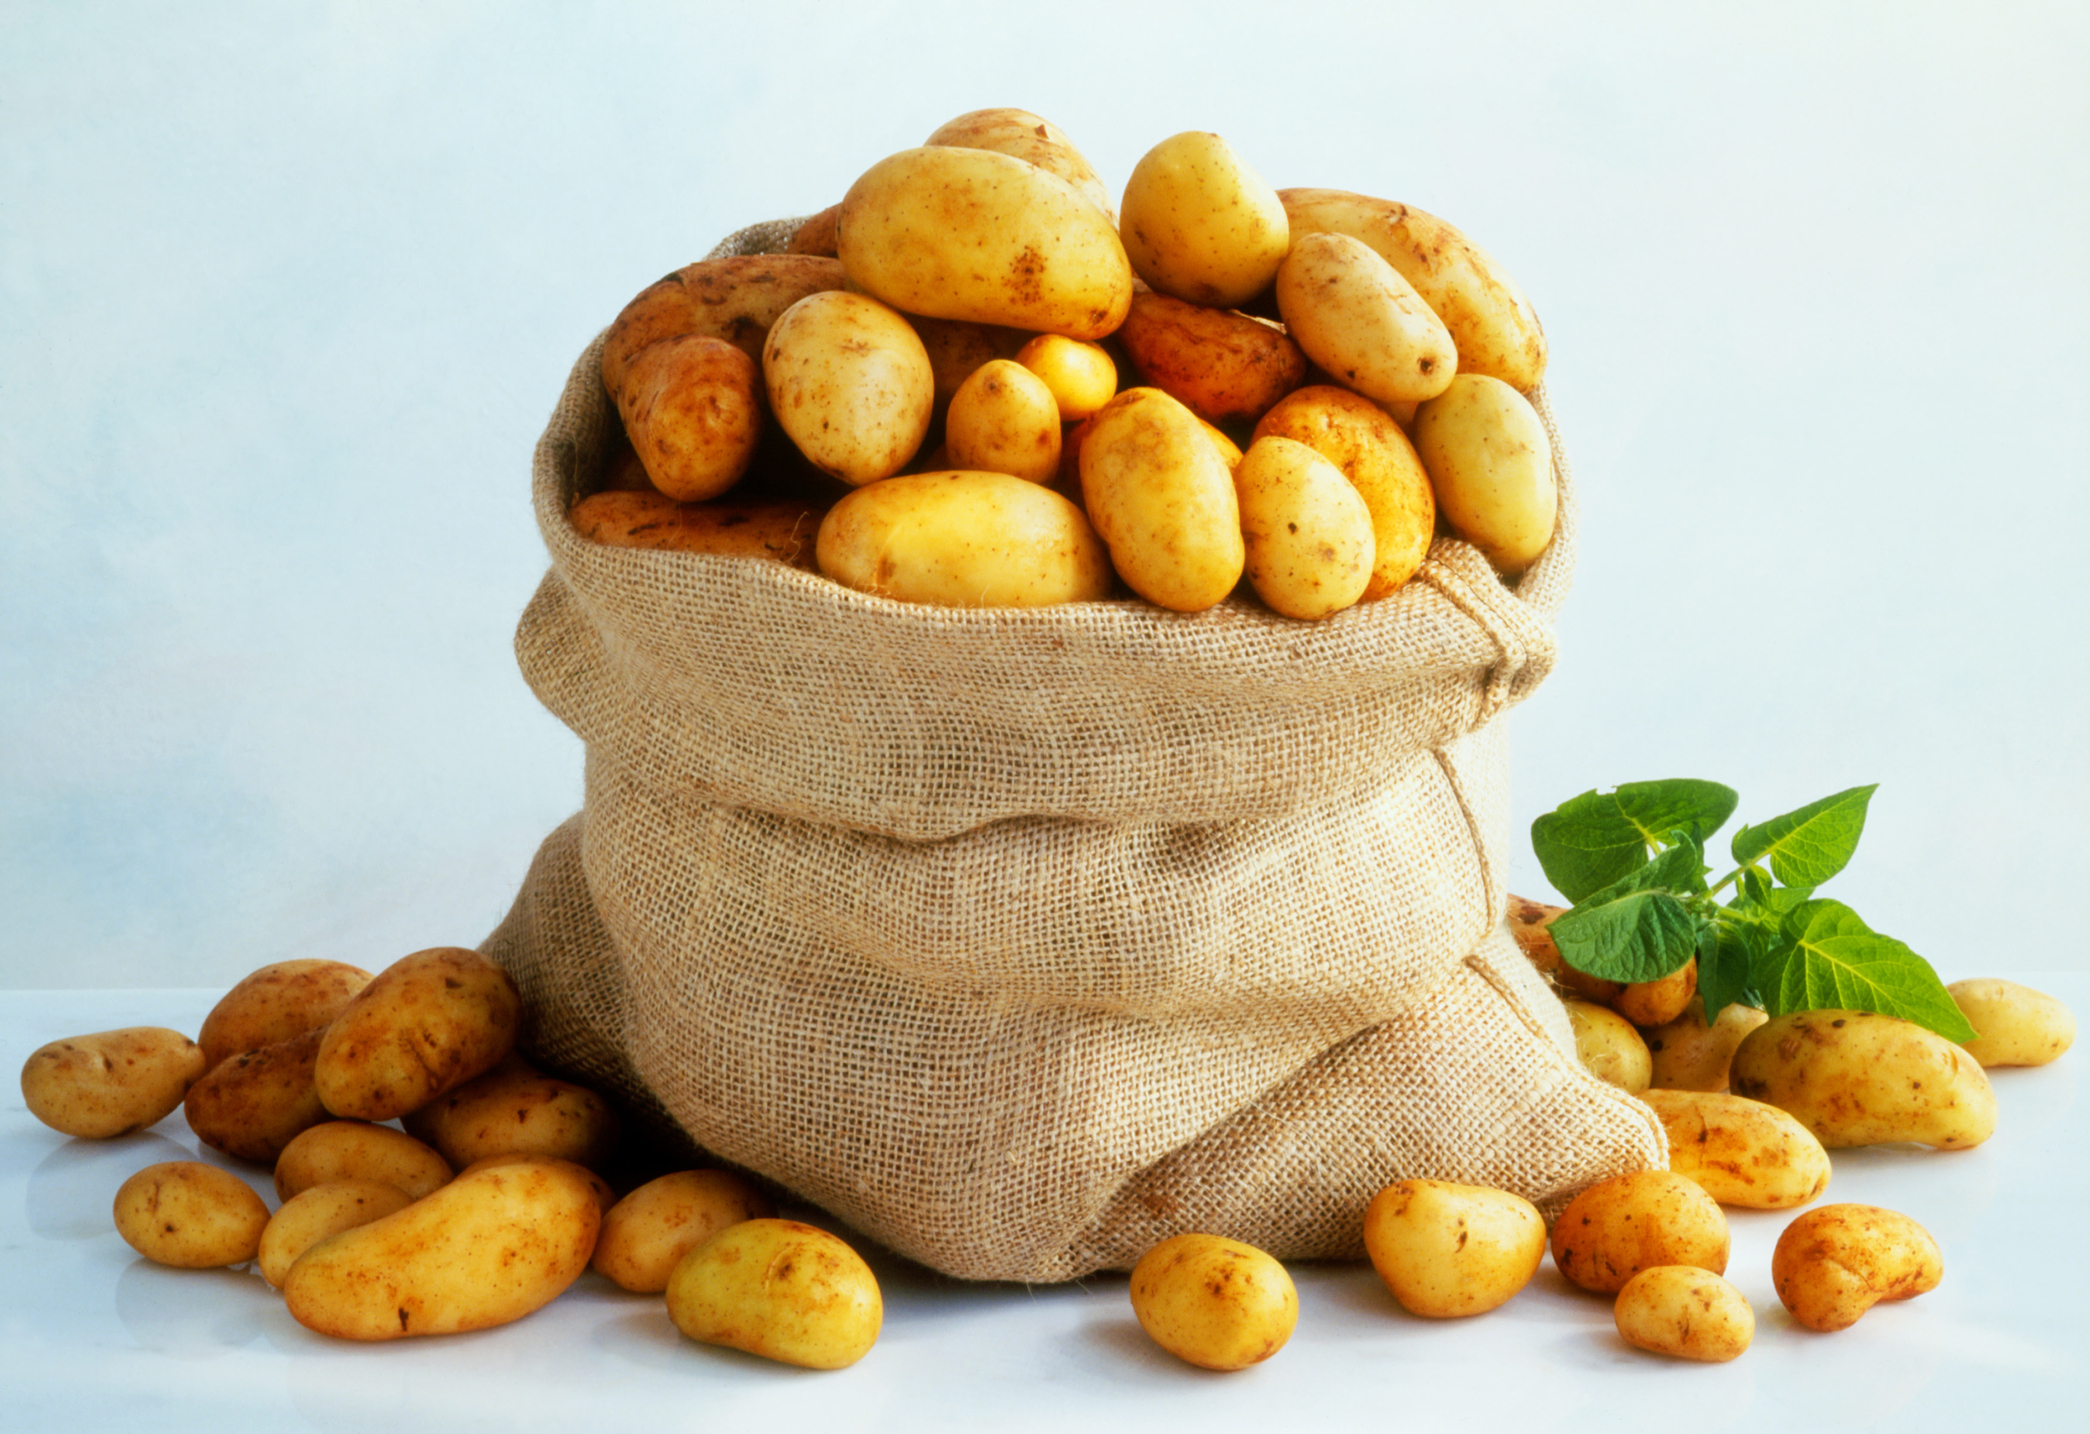 Great News, Just in Time for the Holidays: Potatoes Are Actually Healthy